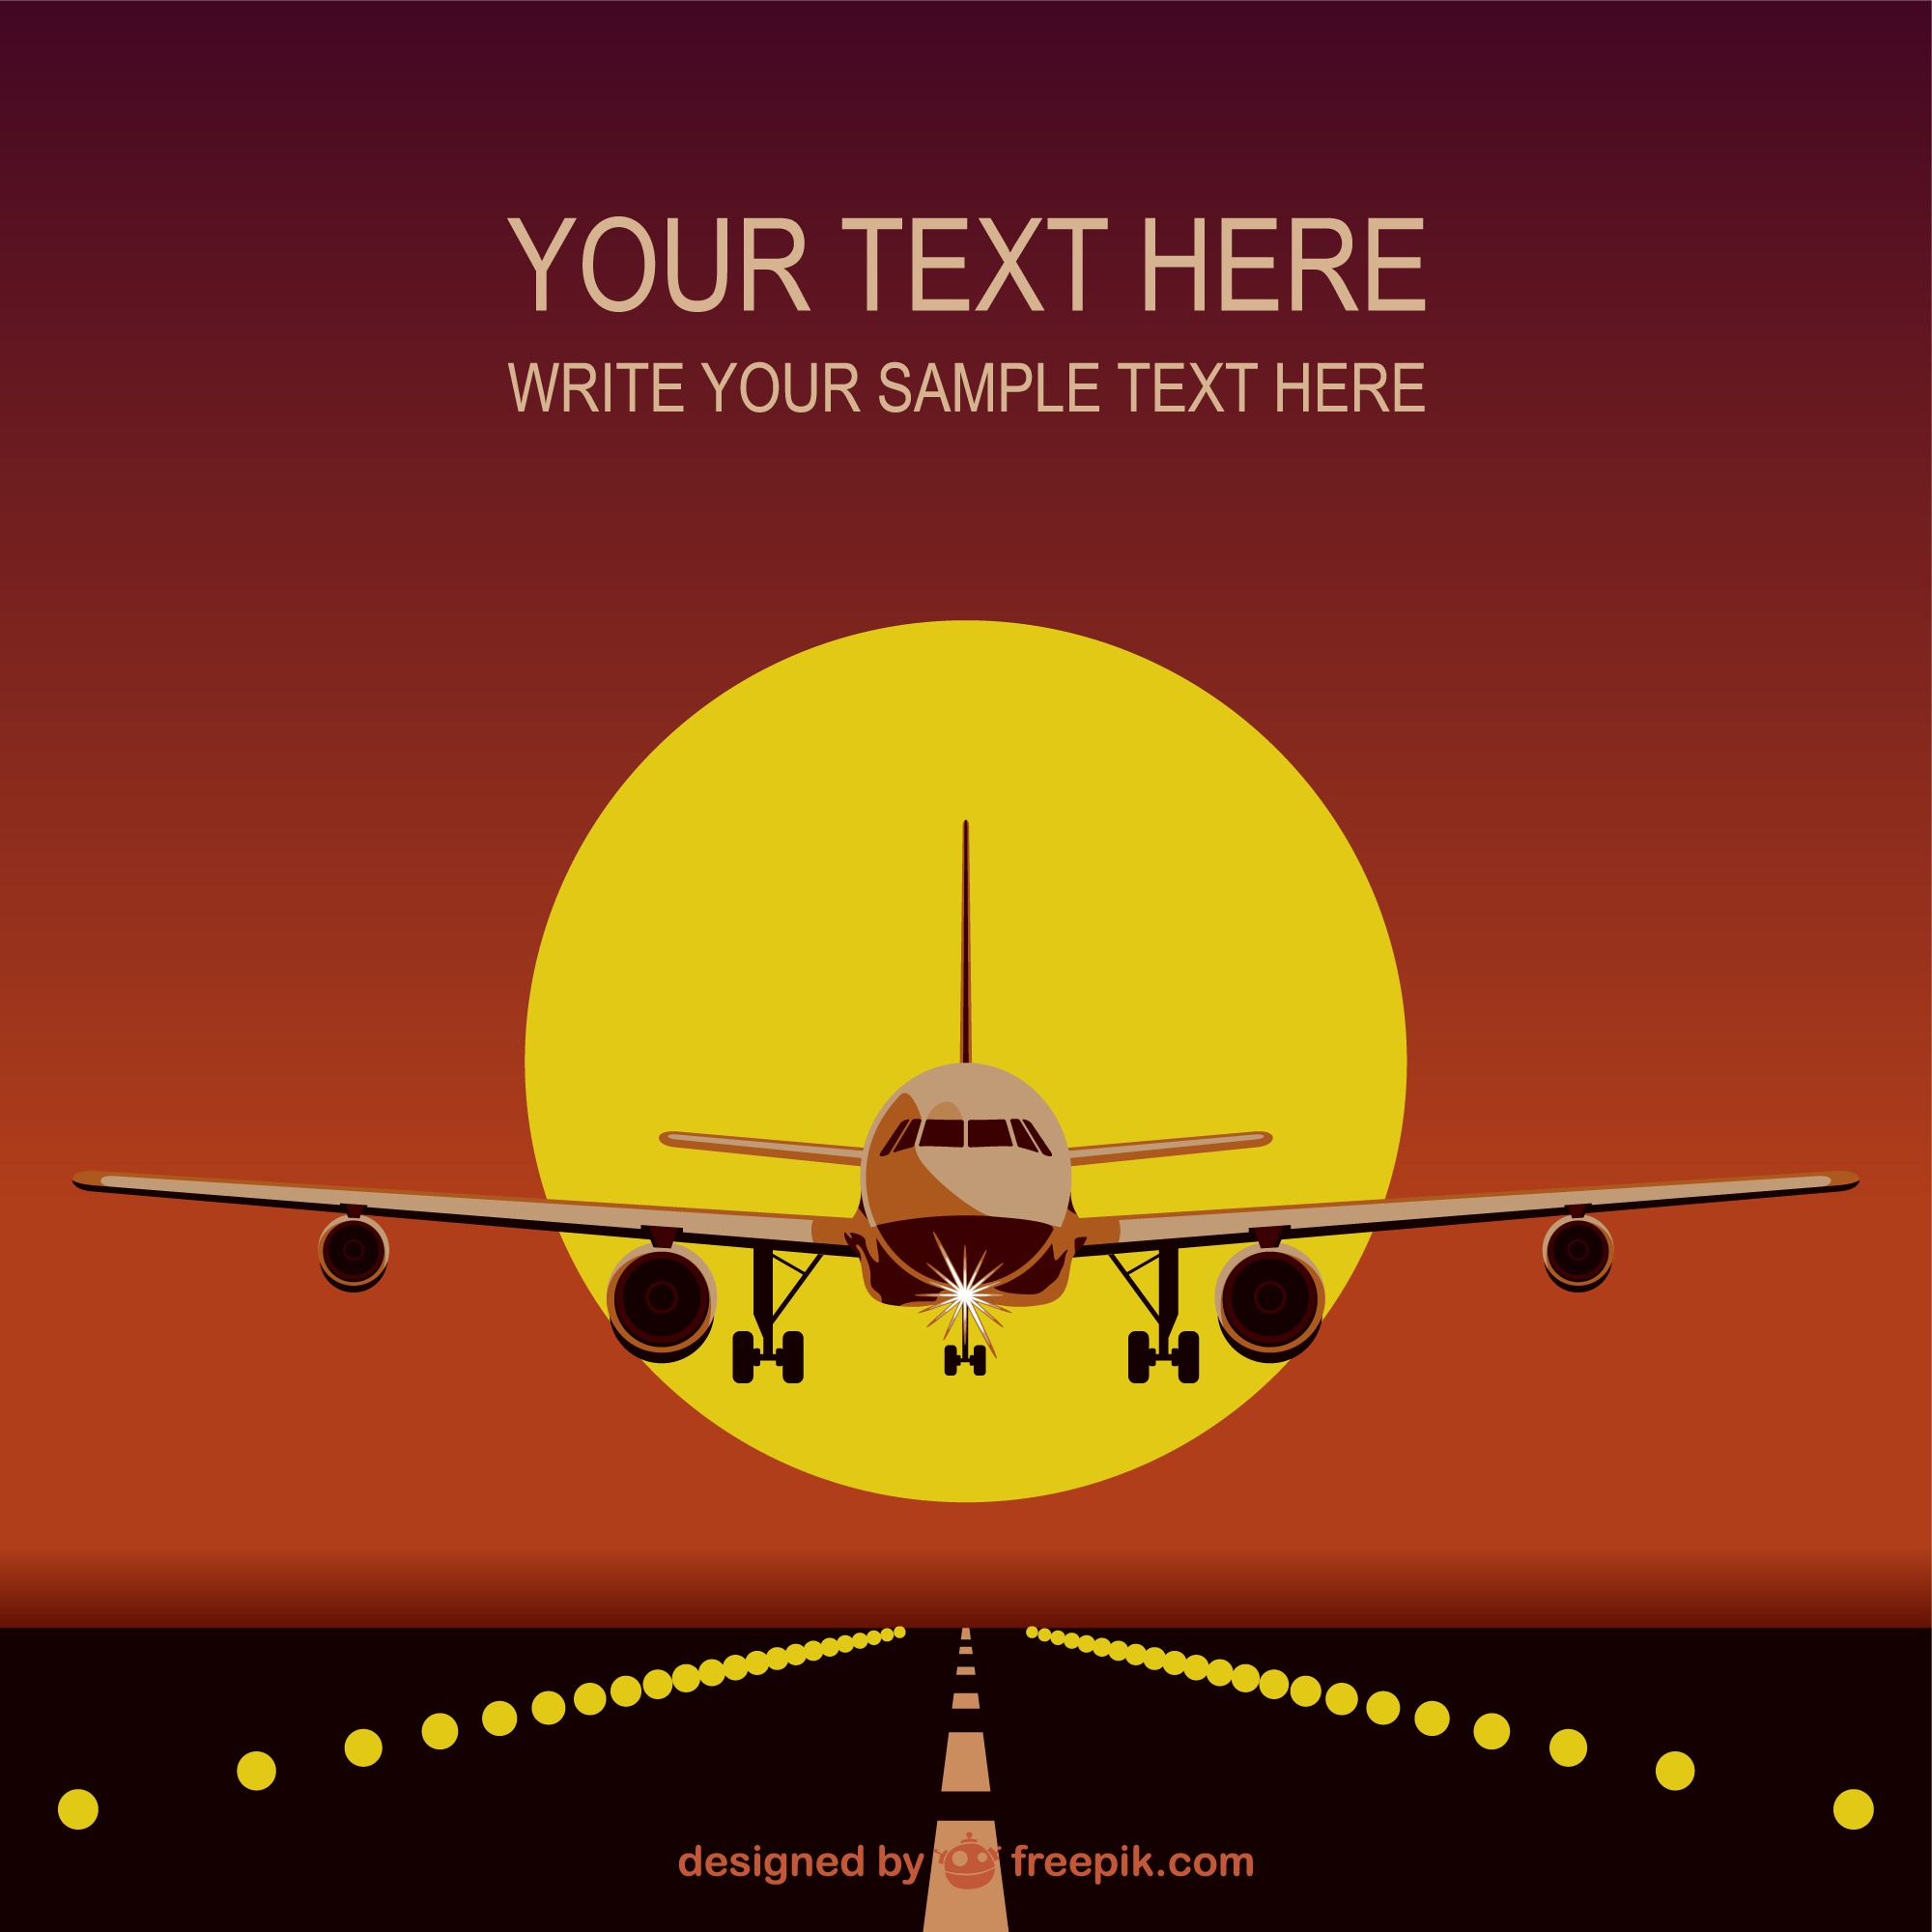 Airplane template free download